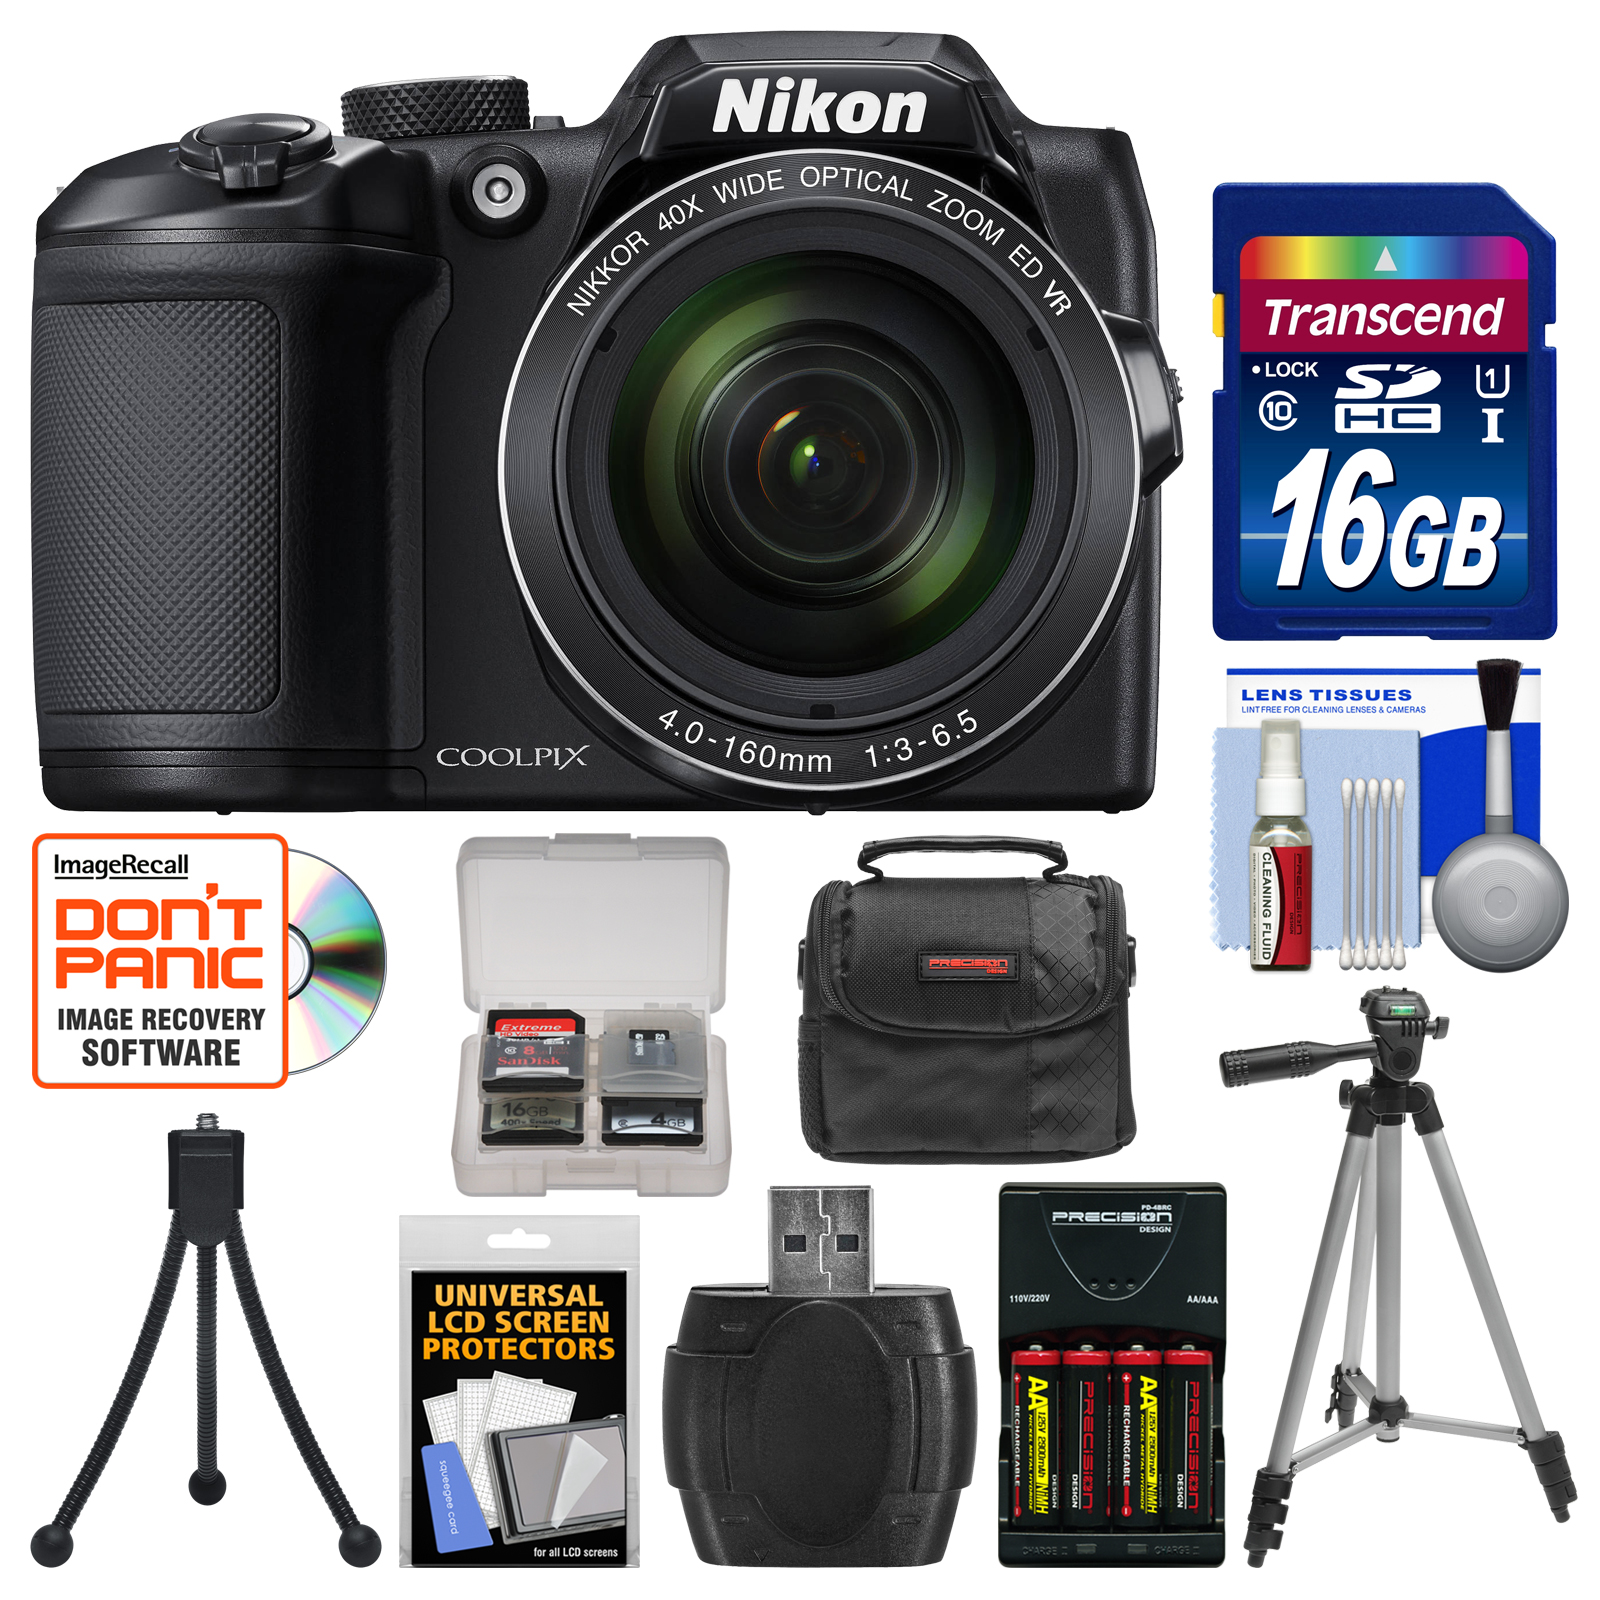 Nikon Coolpix B500 Wi-Fi Digital Camera (Black) with 16GB Card + Case + Batteries & Charger + Tripod + Kit